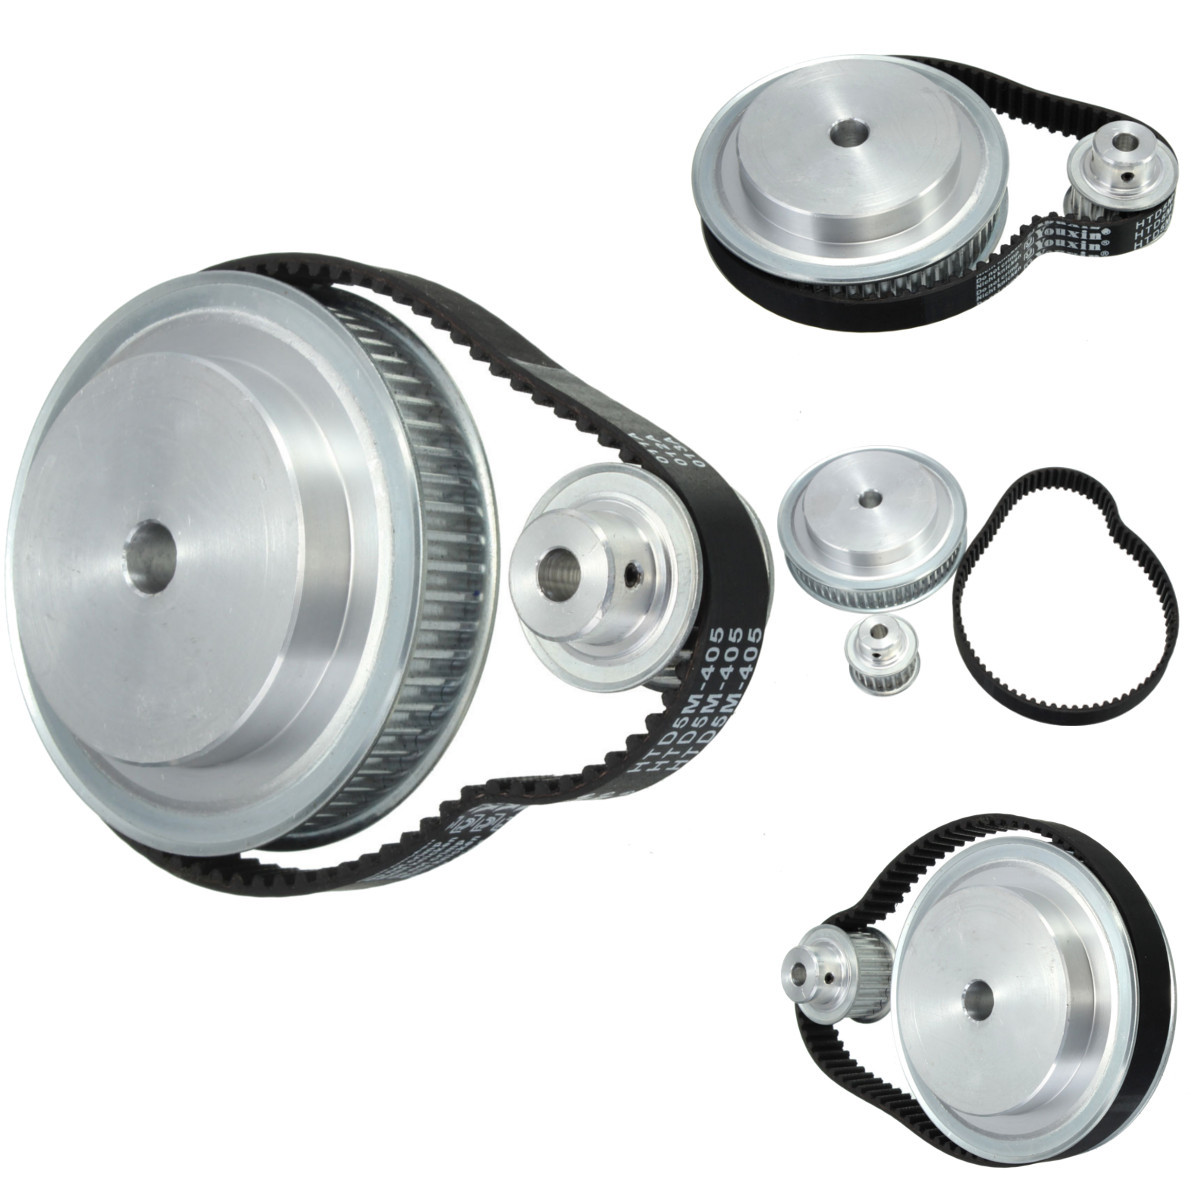 5M Timing Pulley Belt Set Reduction 3:1 Engraving Machine Accessories CNC Belt Pulley Gear Kit